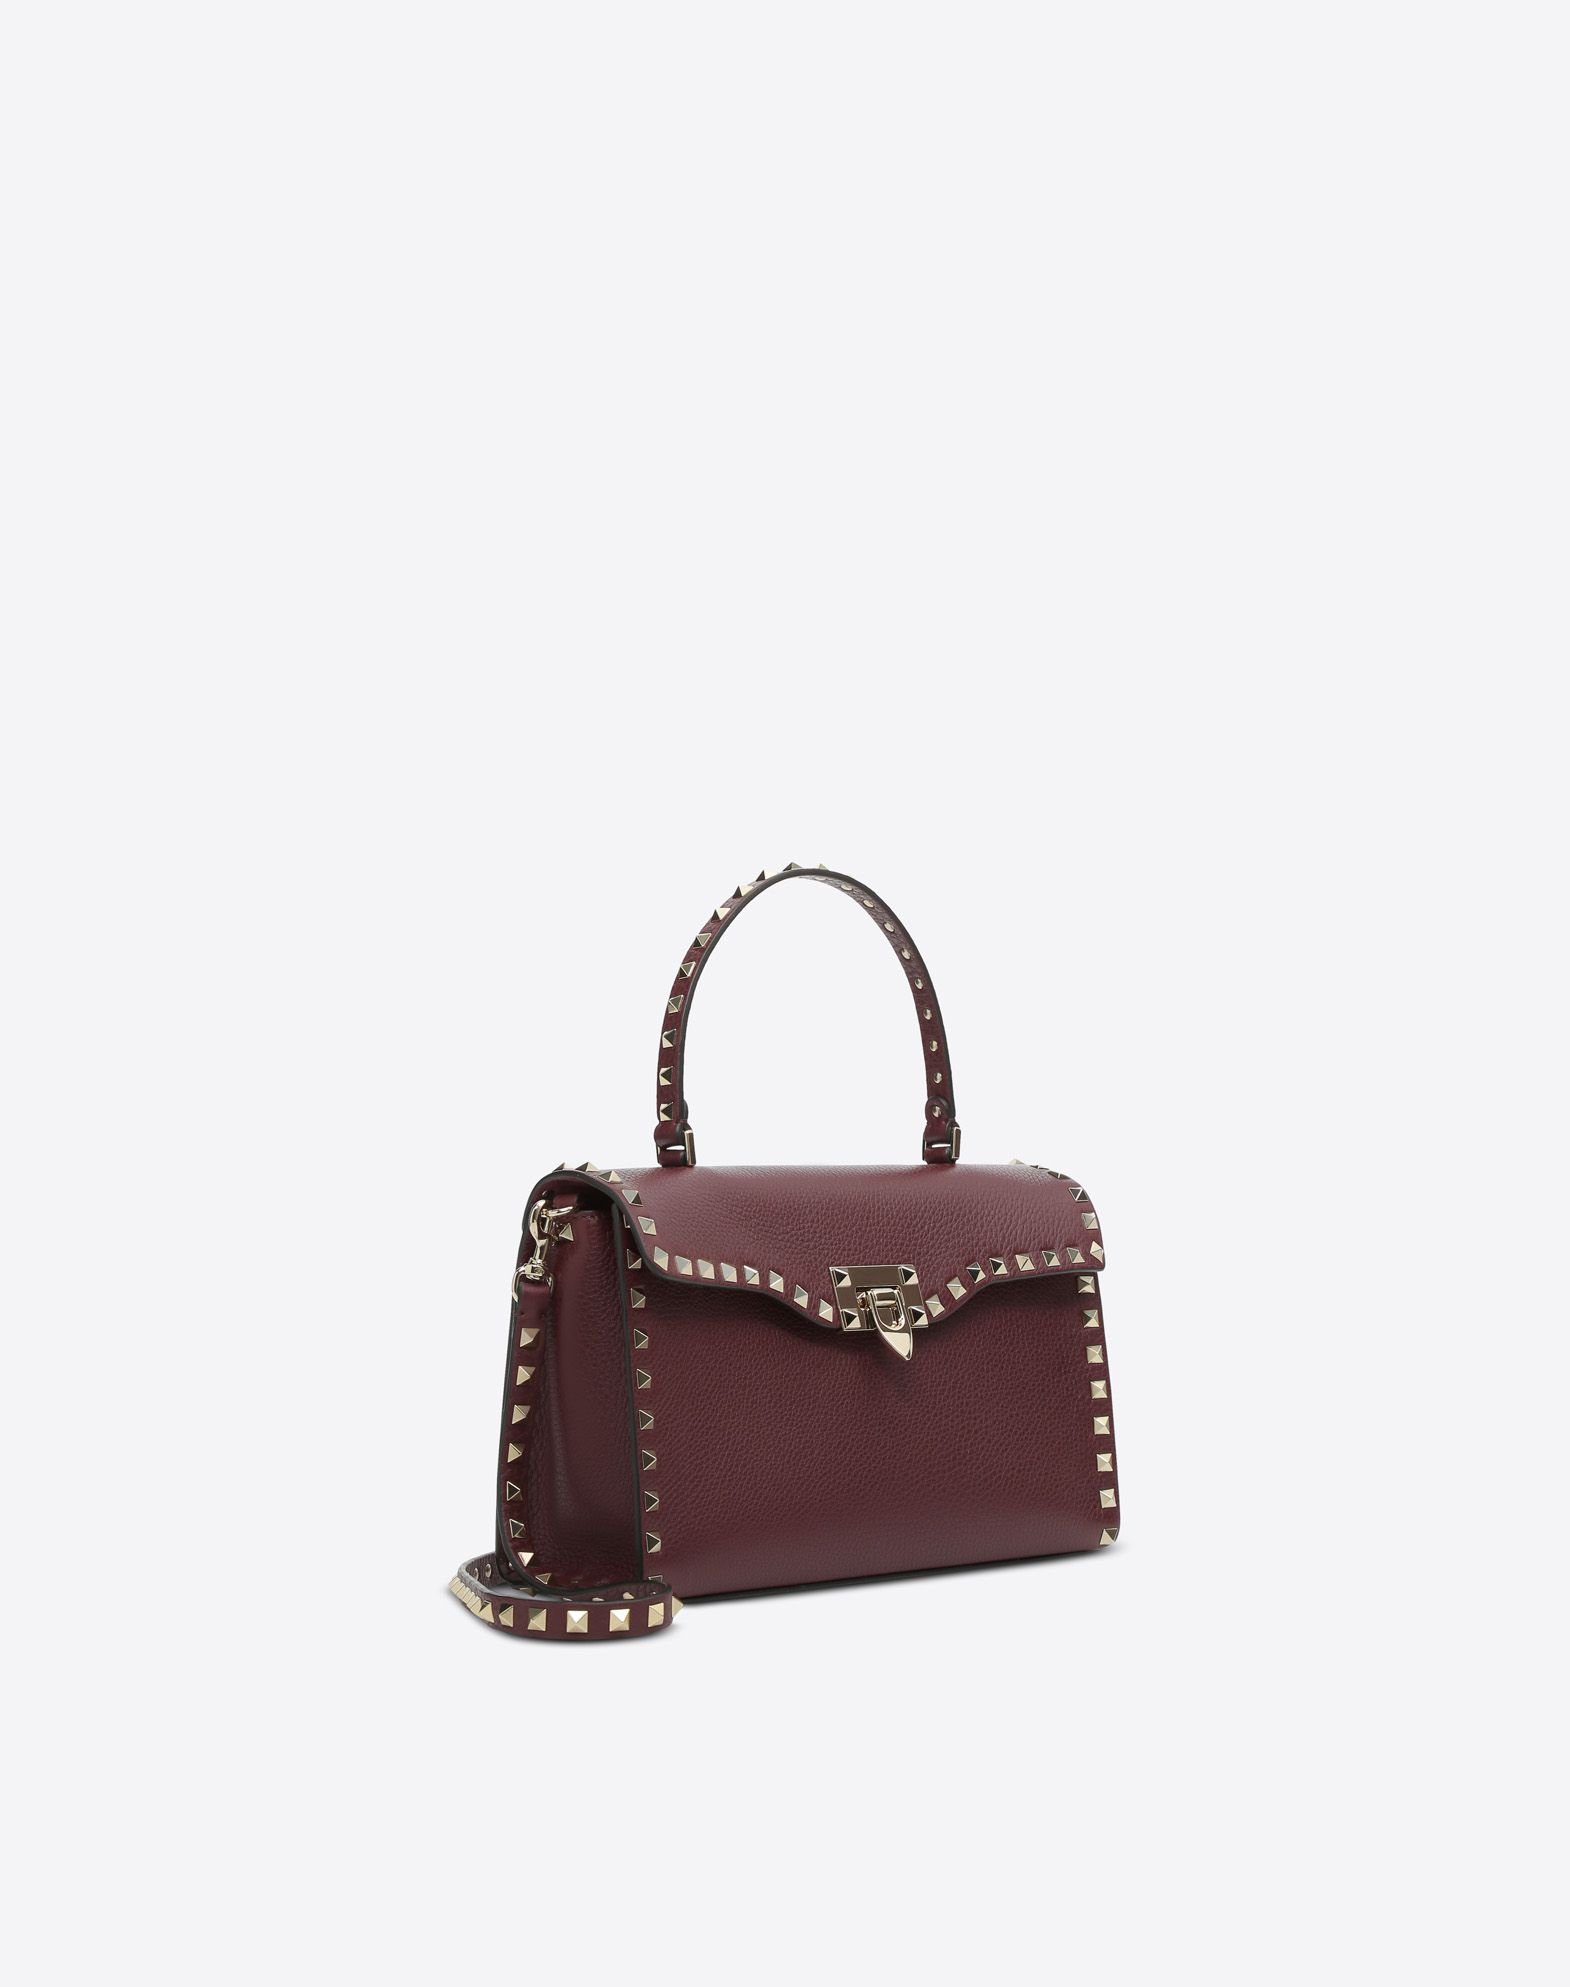 kleine tasche rockstud mit einem henkel f r sie valentino garavani valentino online boutique. Black Bedroom Furniture Sets. Home Design Ideas